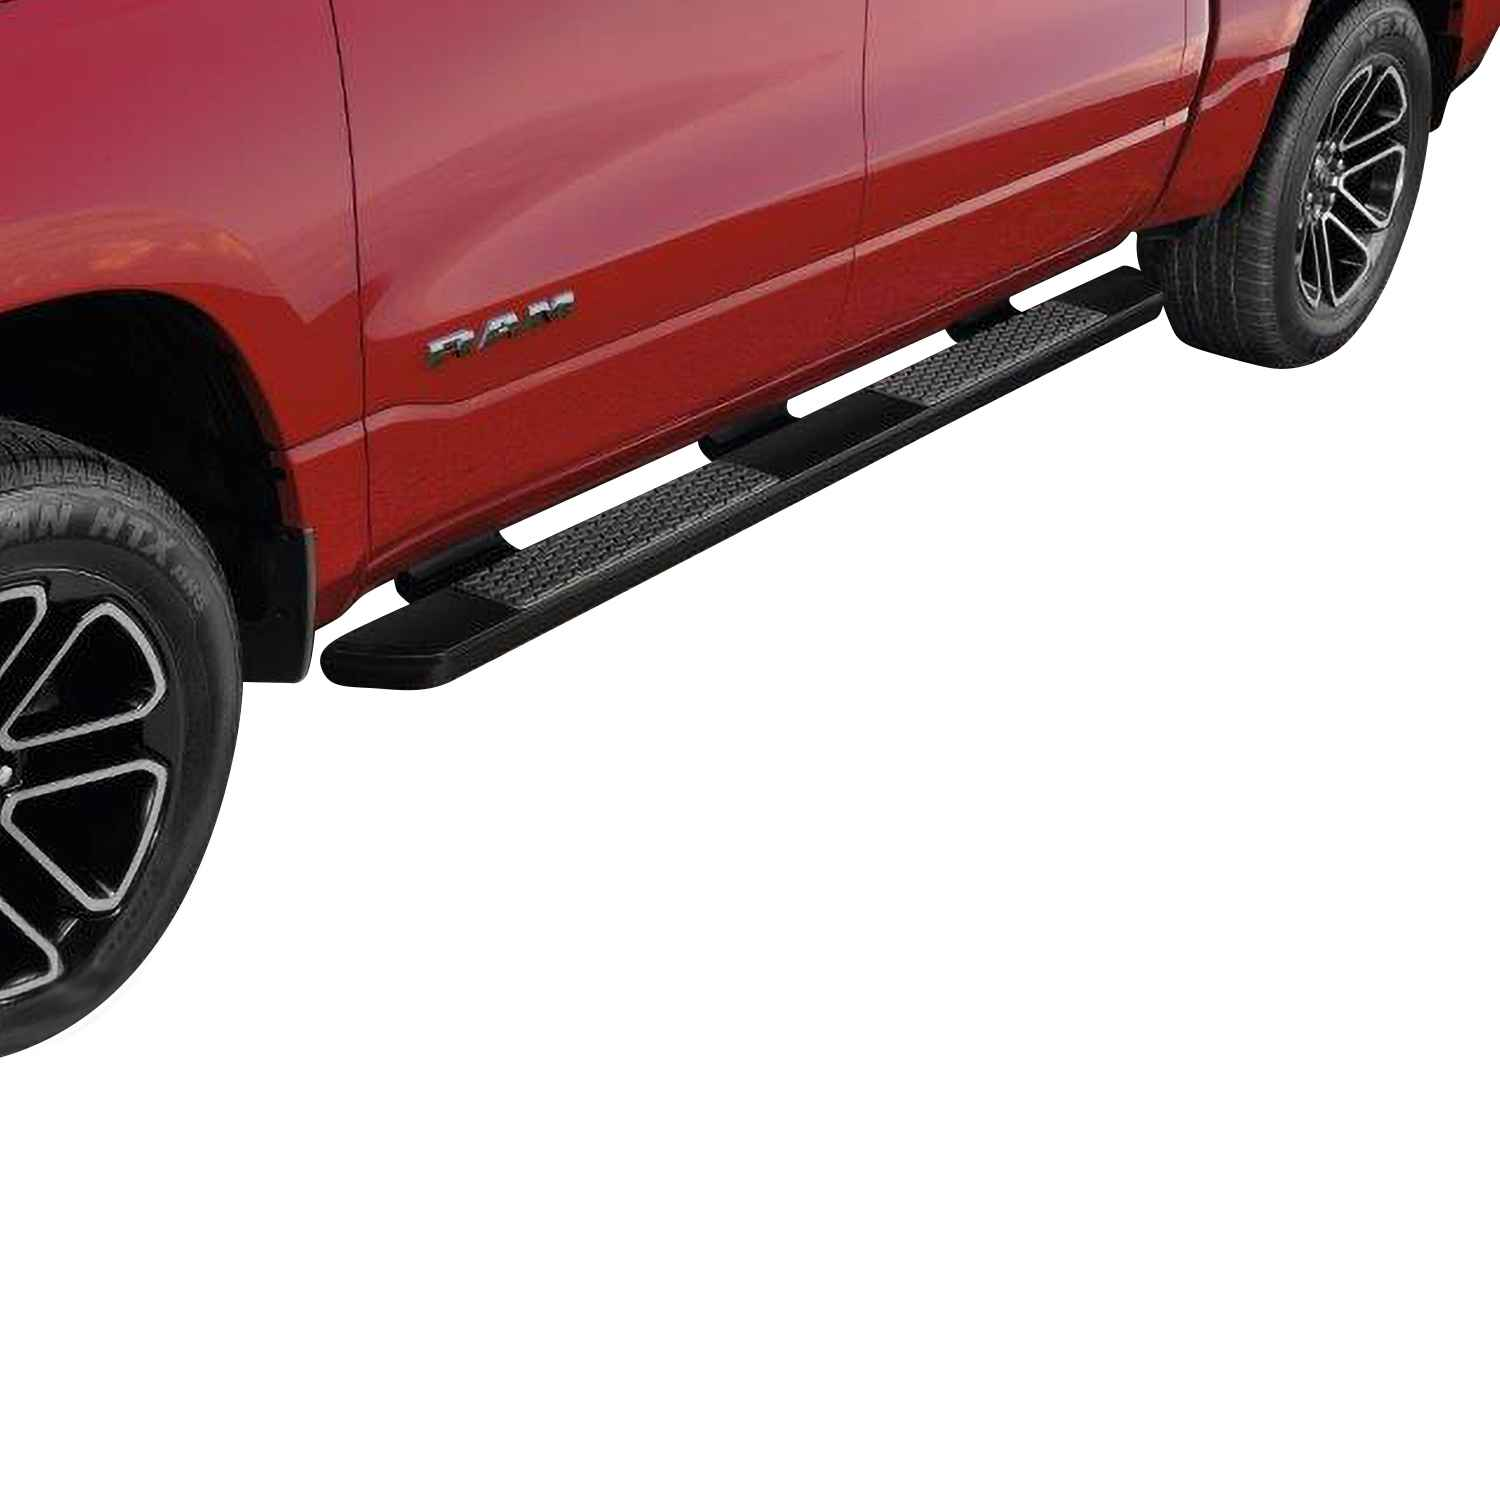 OEM 2021 Ram 1500 (All-New) Cab Length Painted Running Boards, Crew Cab, Matte Black (Part #82215301AC)